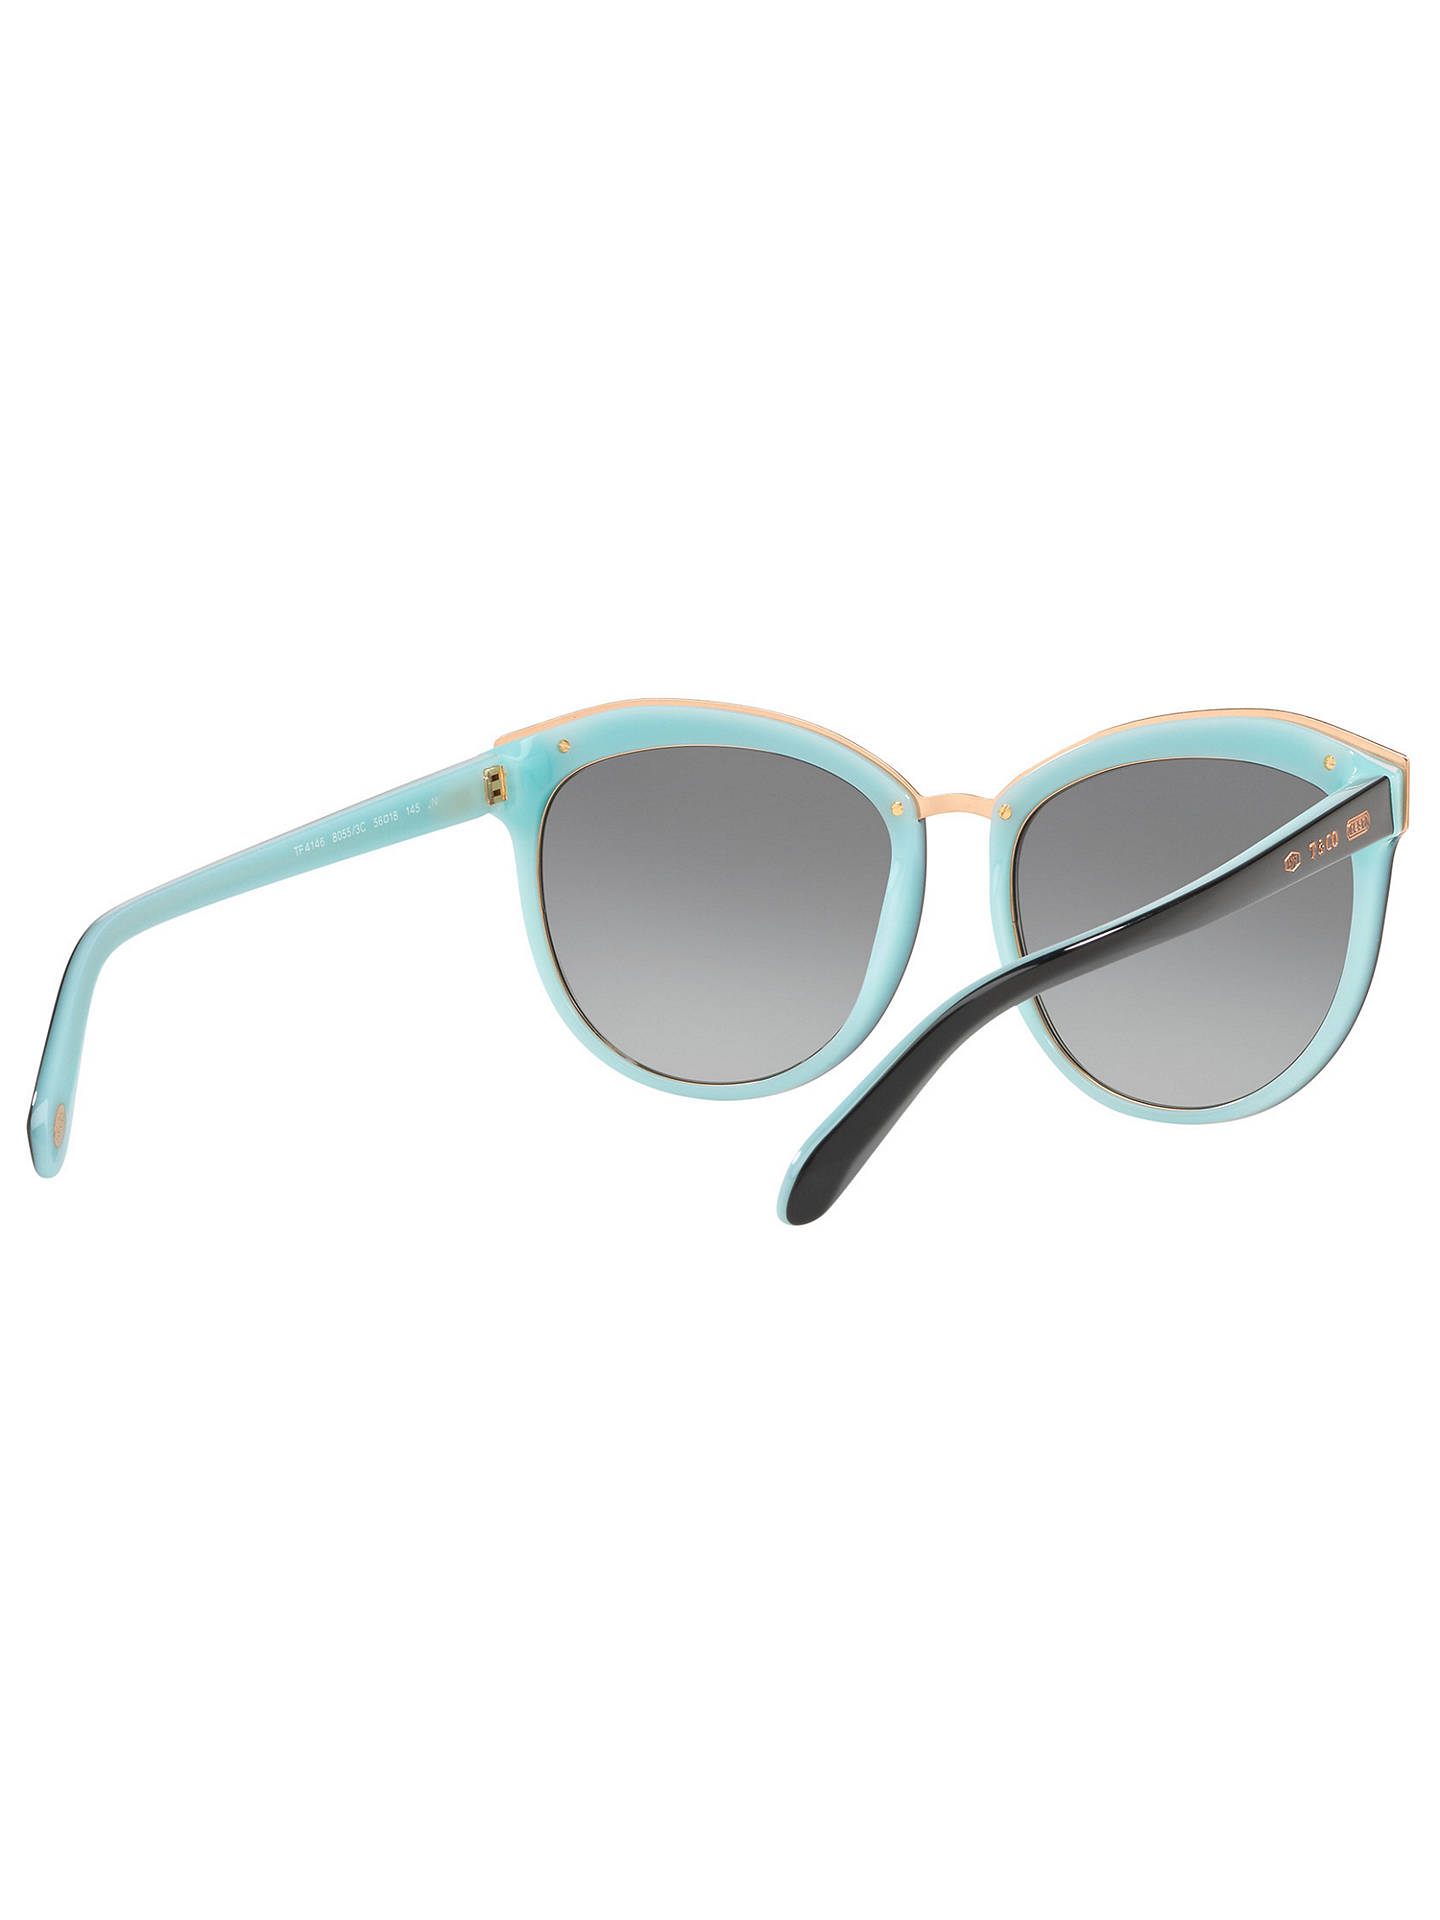 BuyTiffany & Co TF4146 Women's Oval Sunglasses, Black/Grey Gradient Online at johnlewis.com